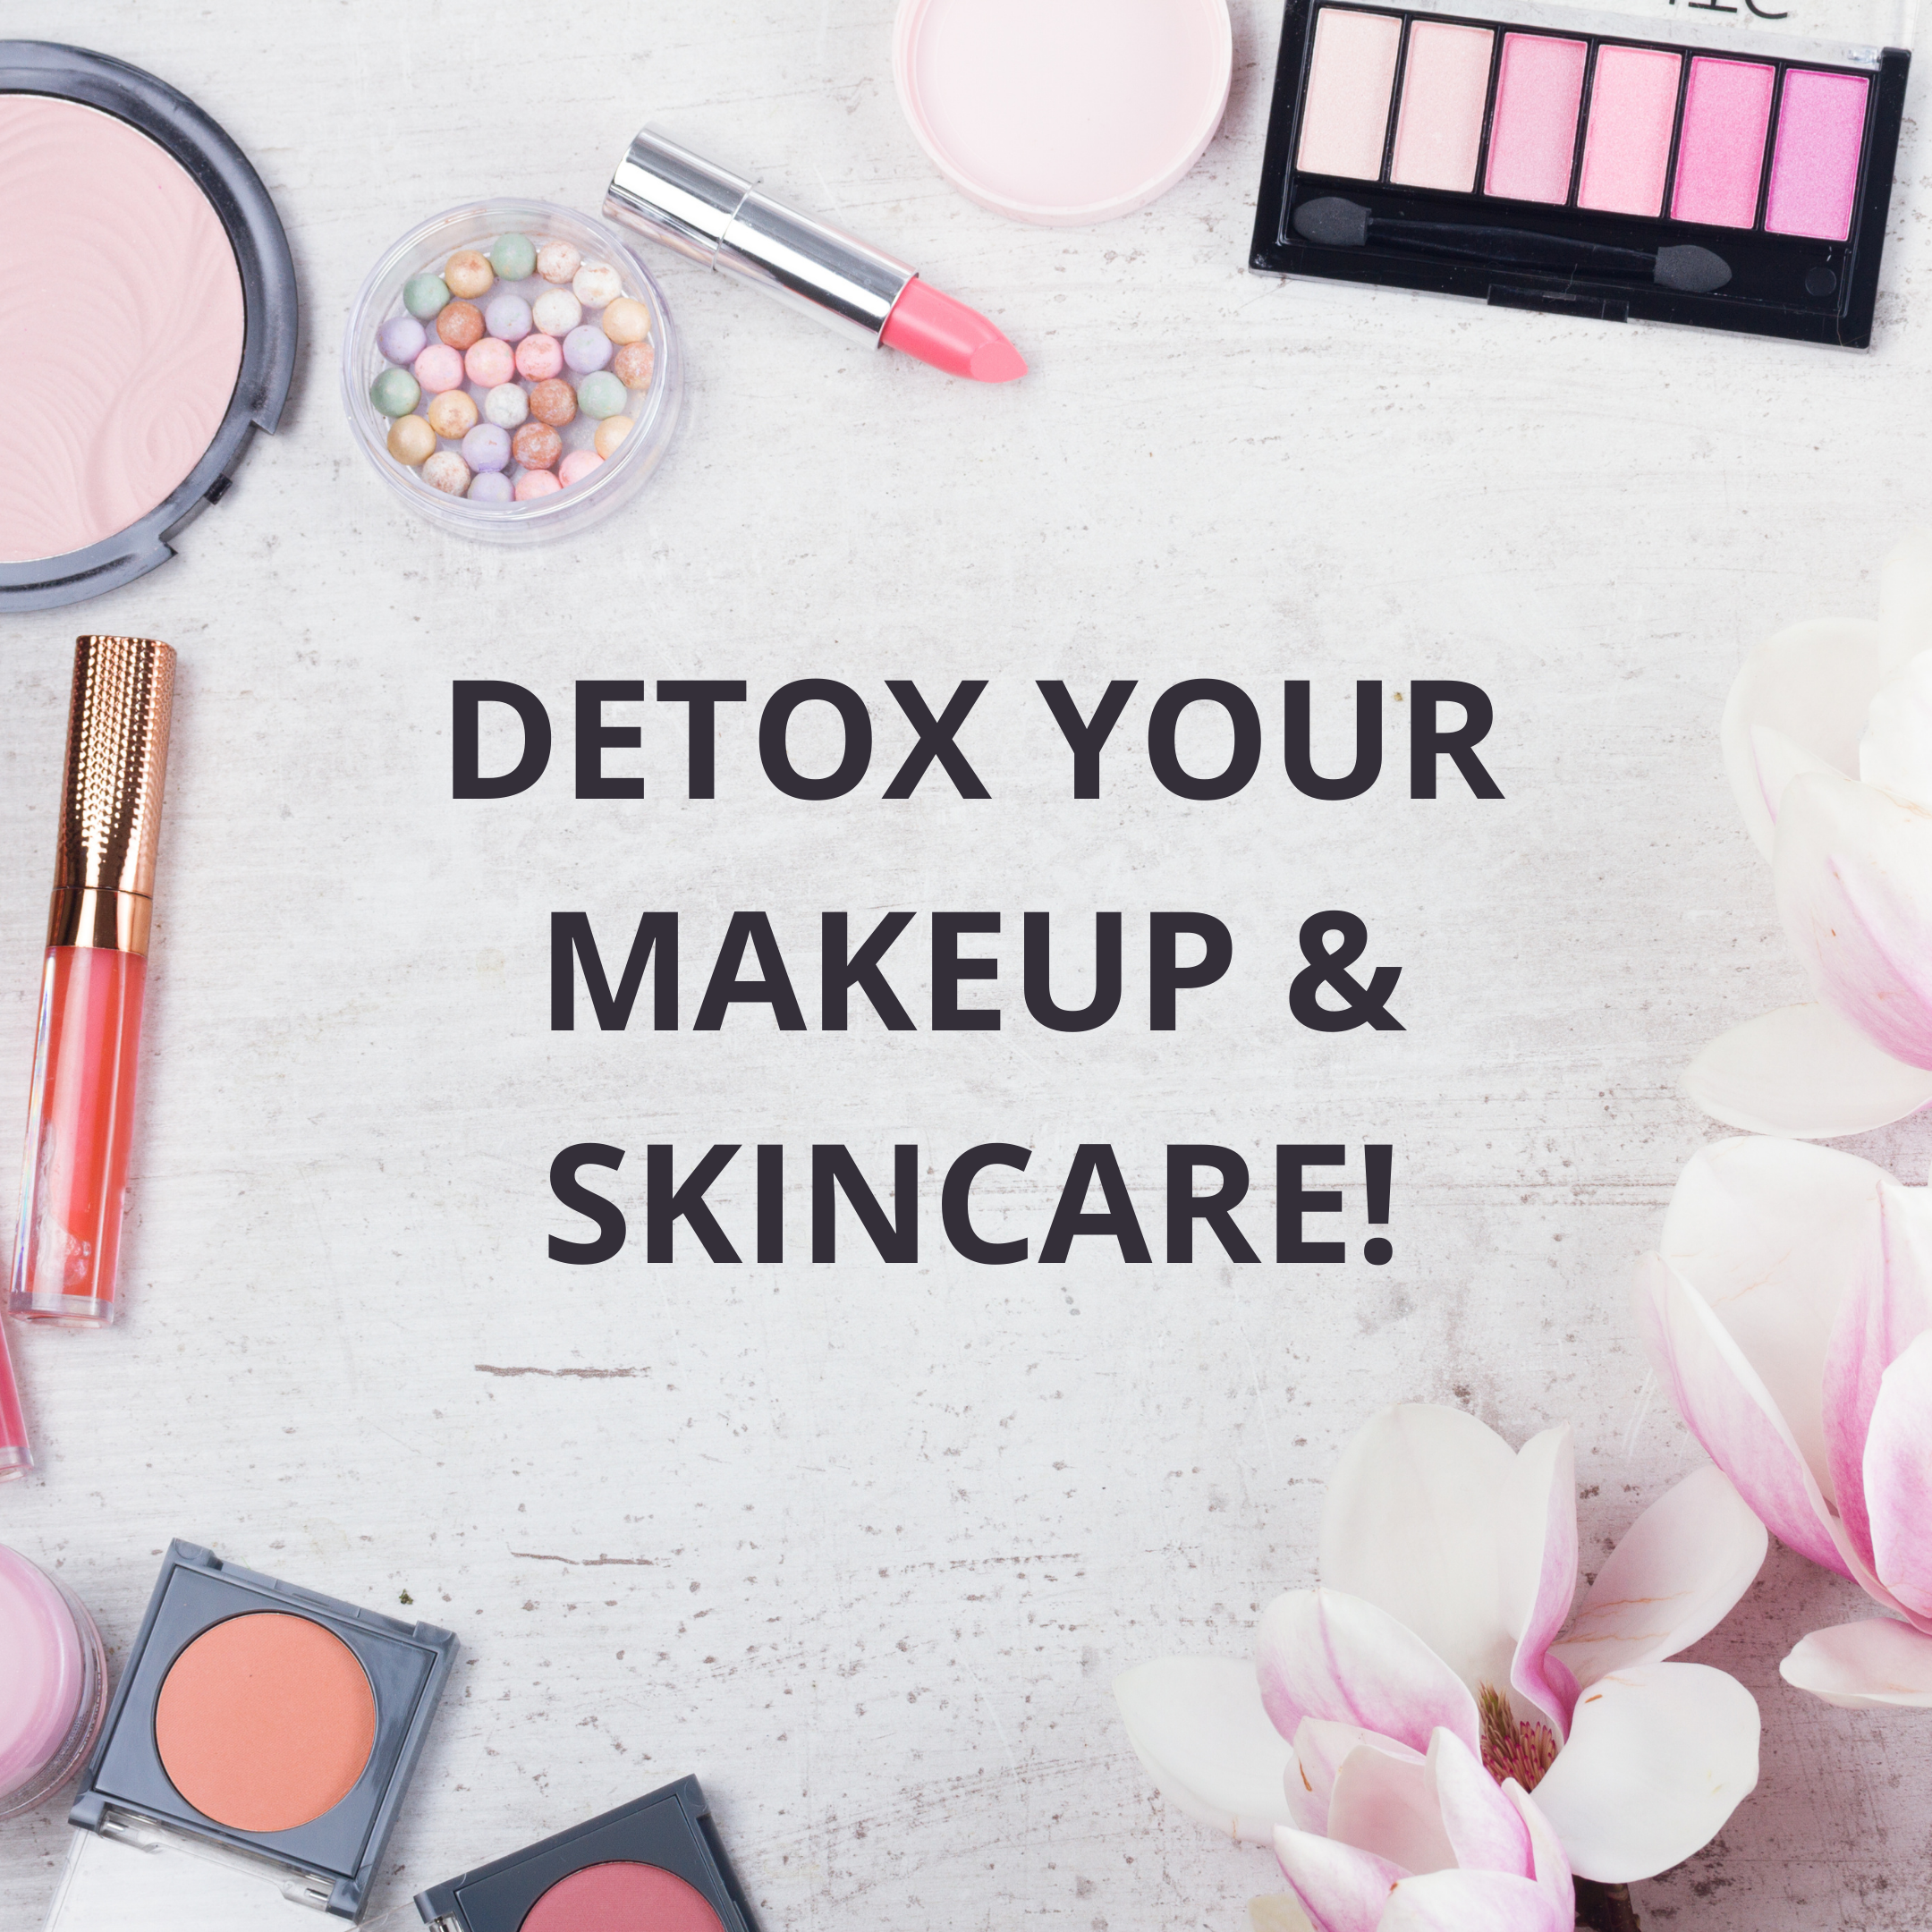 Decrease body burden by swapping out toxic makeup and skincare. Check out my favorite clean beauty brand!